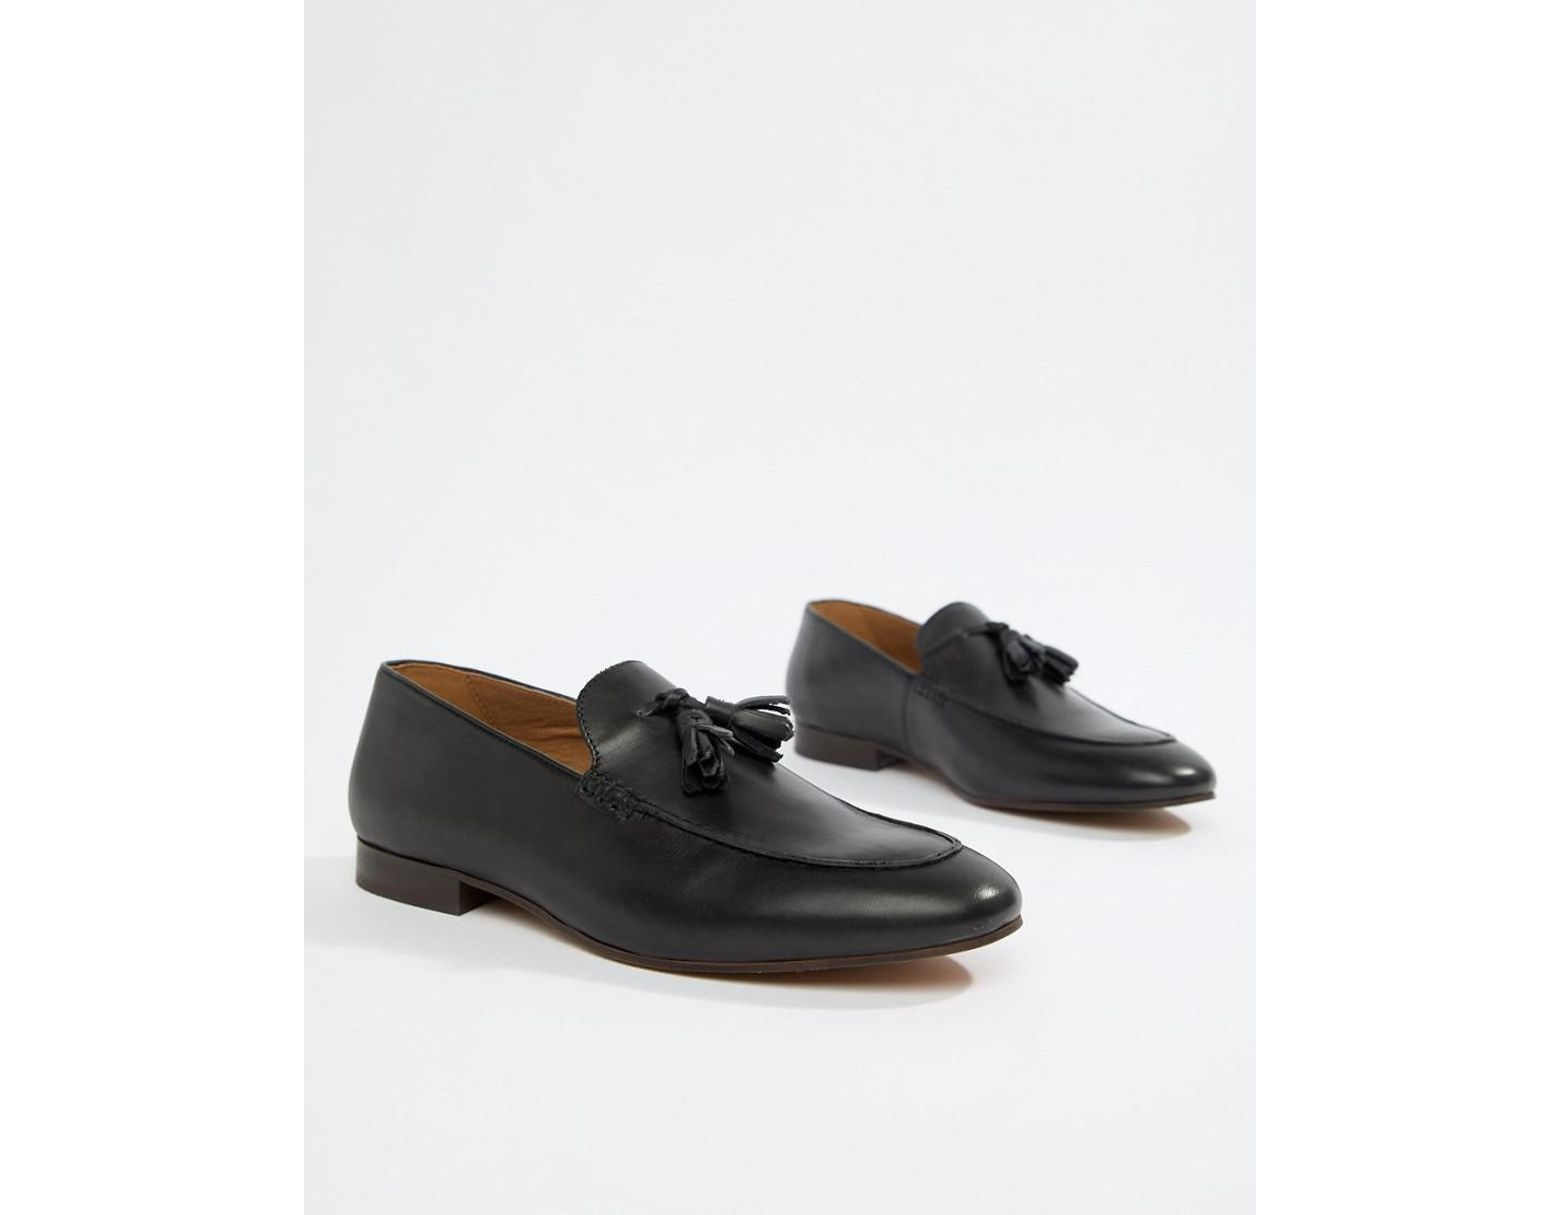 c576afc5d374a H by Hudson Bolton Tassel Loafers In Black Leather in Black for Men - Lyst